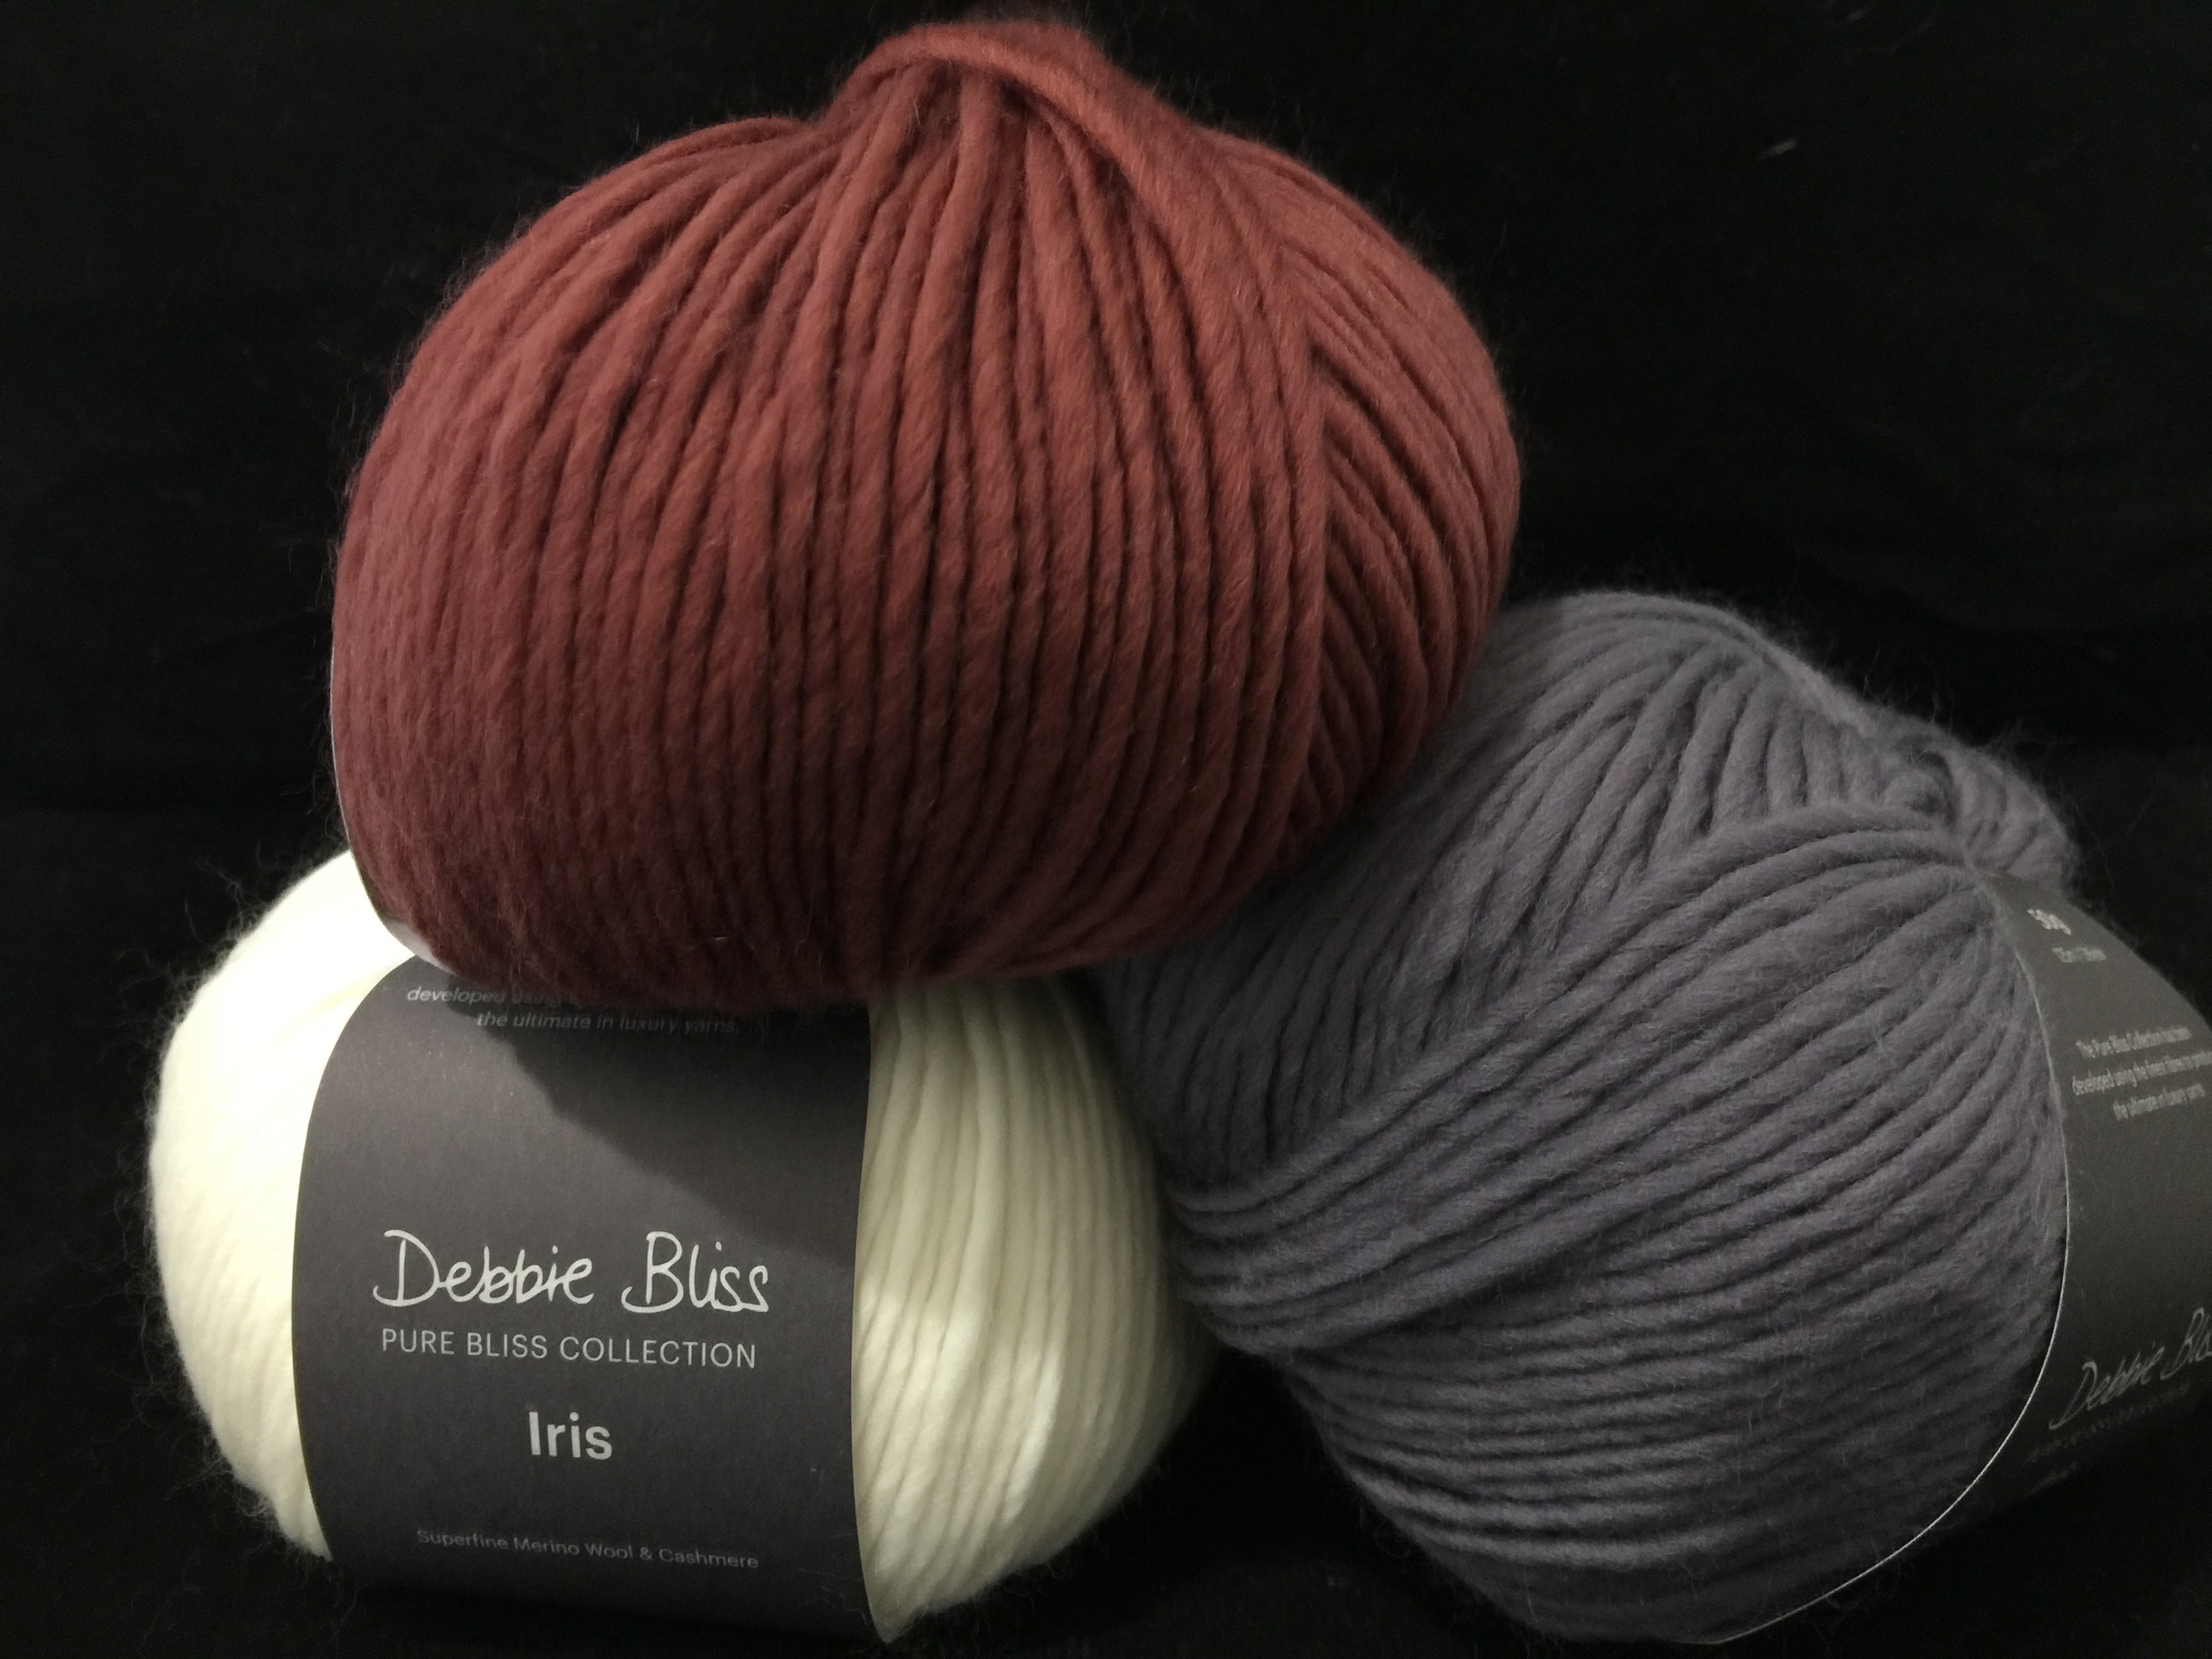 Debbie Bliss, Iris, 95% Wool, 5% Cashmere, #4 Worsted Weight